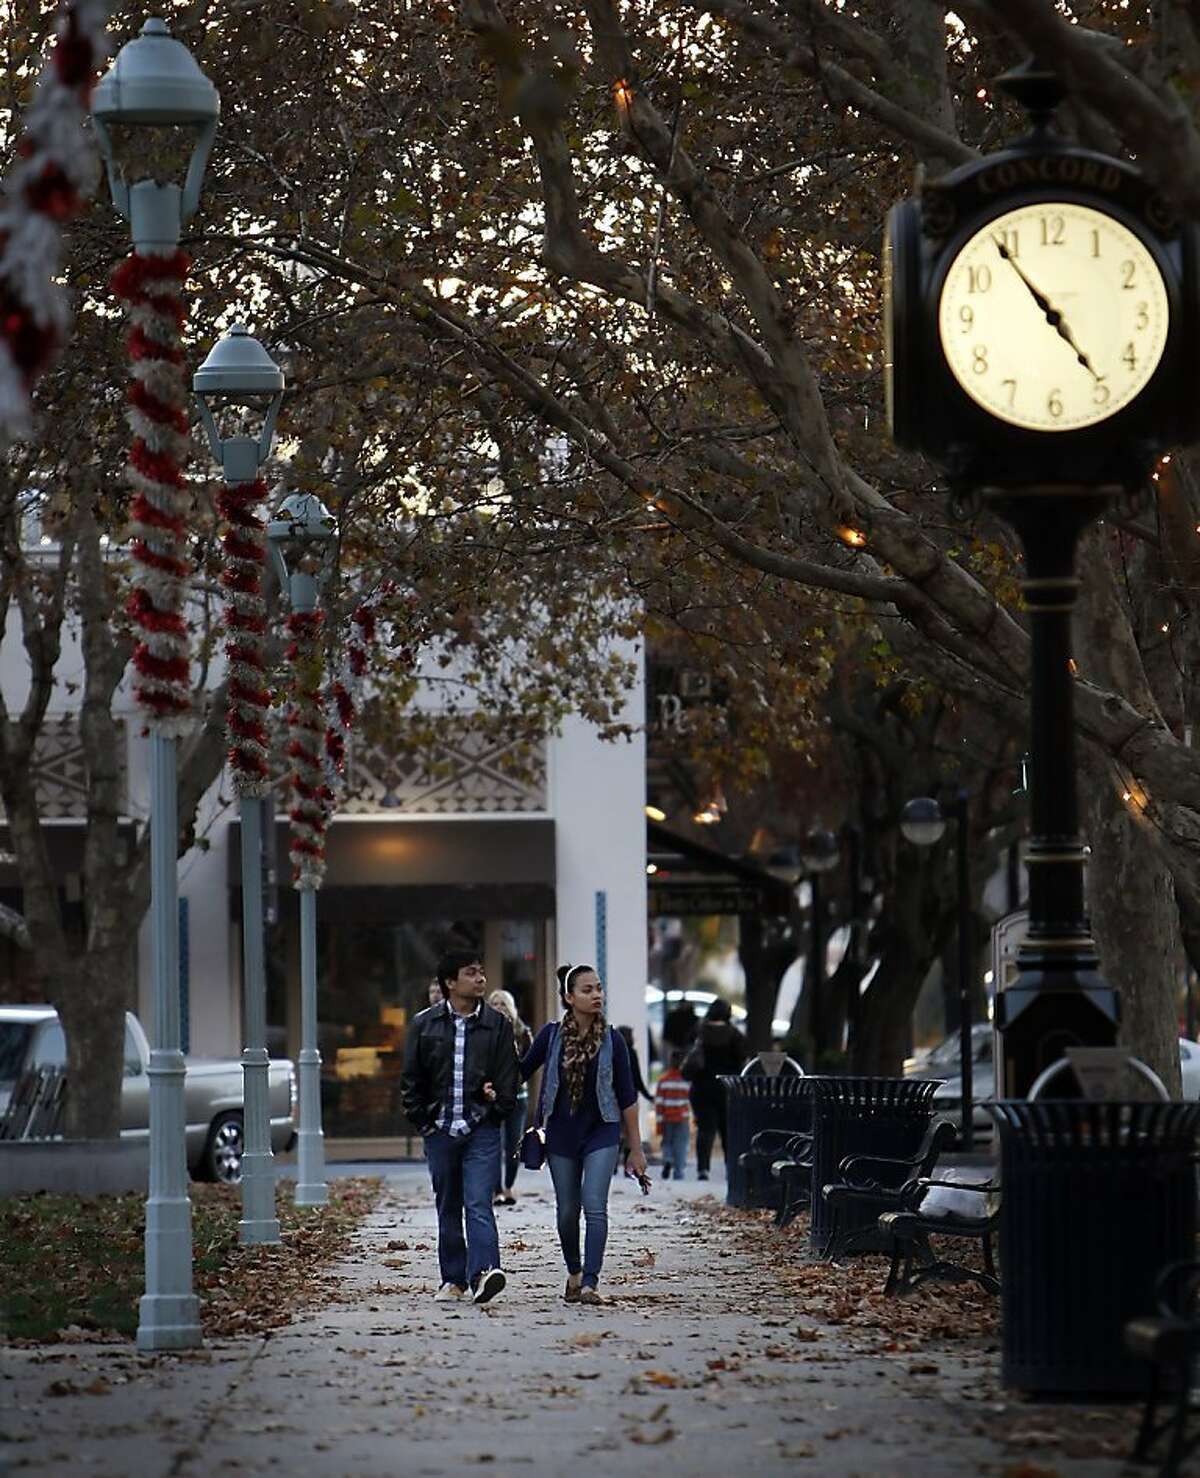 A couple walks along Salvio Street at Todos Santos Plaza in Concord, Calif., on Thursday, November 22, 2012. Todos Santos Plaza in Concord, Calif., was dedicated by Concord pioneer, Don Salvio Pacheco, in 1868 as the town square of the little 20-block town of Todos Santos, which was shortly renamed Concord. This 2.5 acre plot is filled with flowers, trees, benches and picnic tables. Today, Todos Santos Plaza is still the town's center and home to concerts, a fall festival, a Fourth of July parade and many other community events.